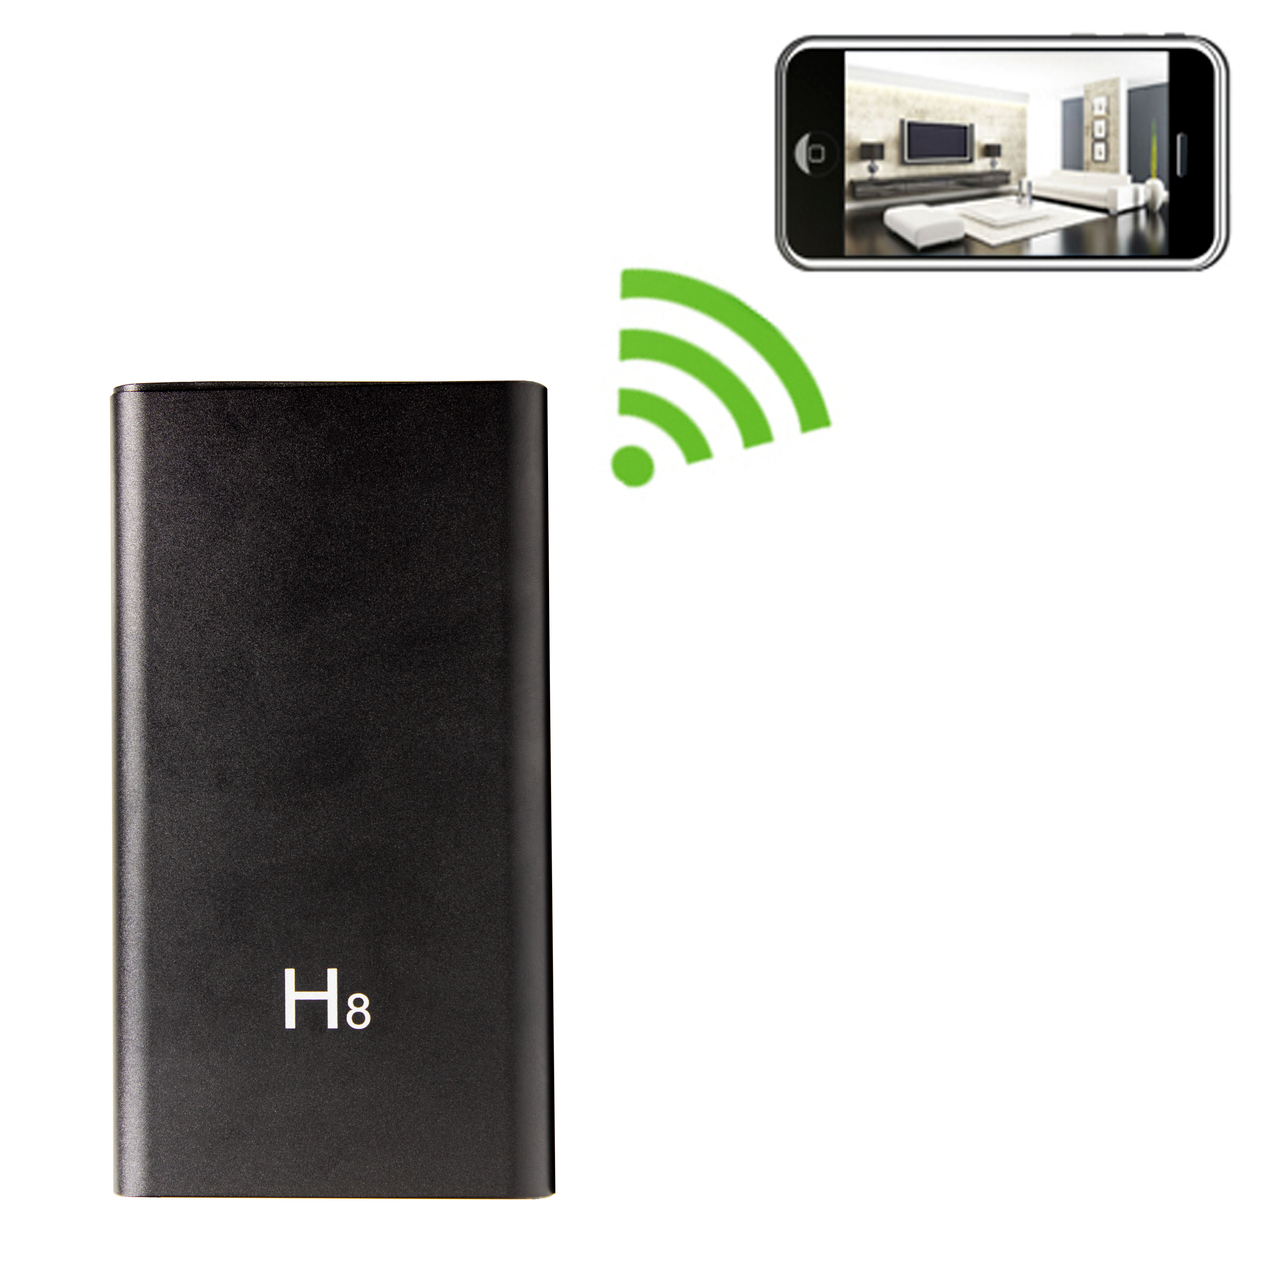 Slimline Power Bank Hidden Camera with DVR and Night Vision 1920x1080